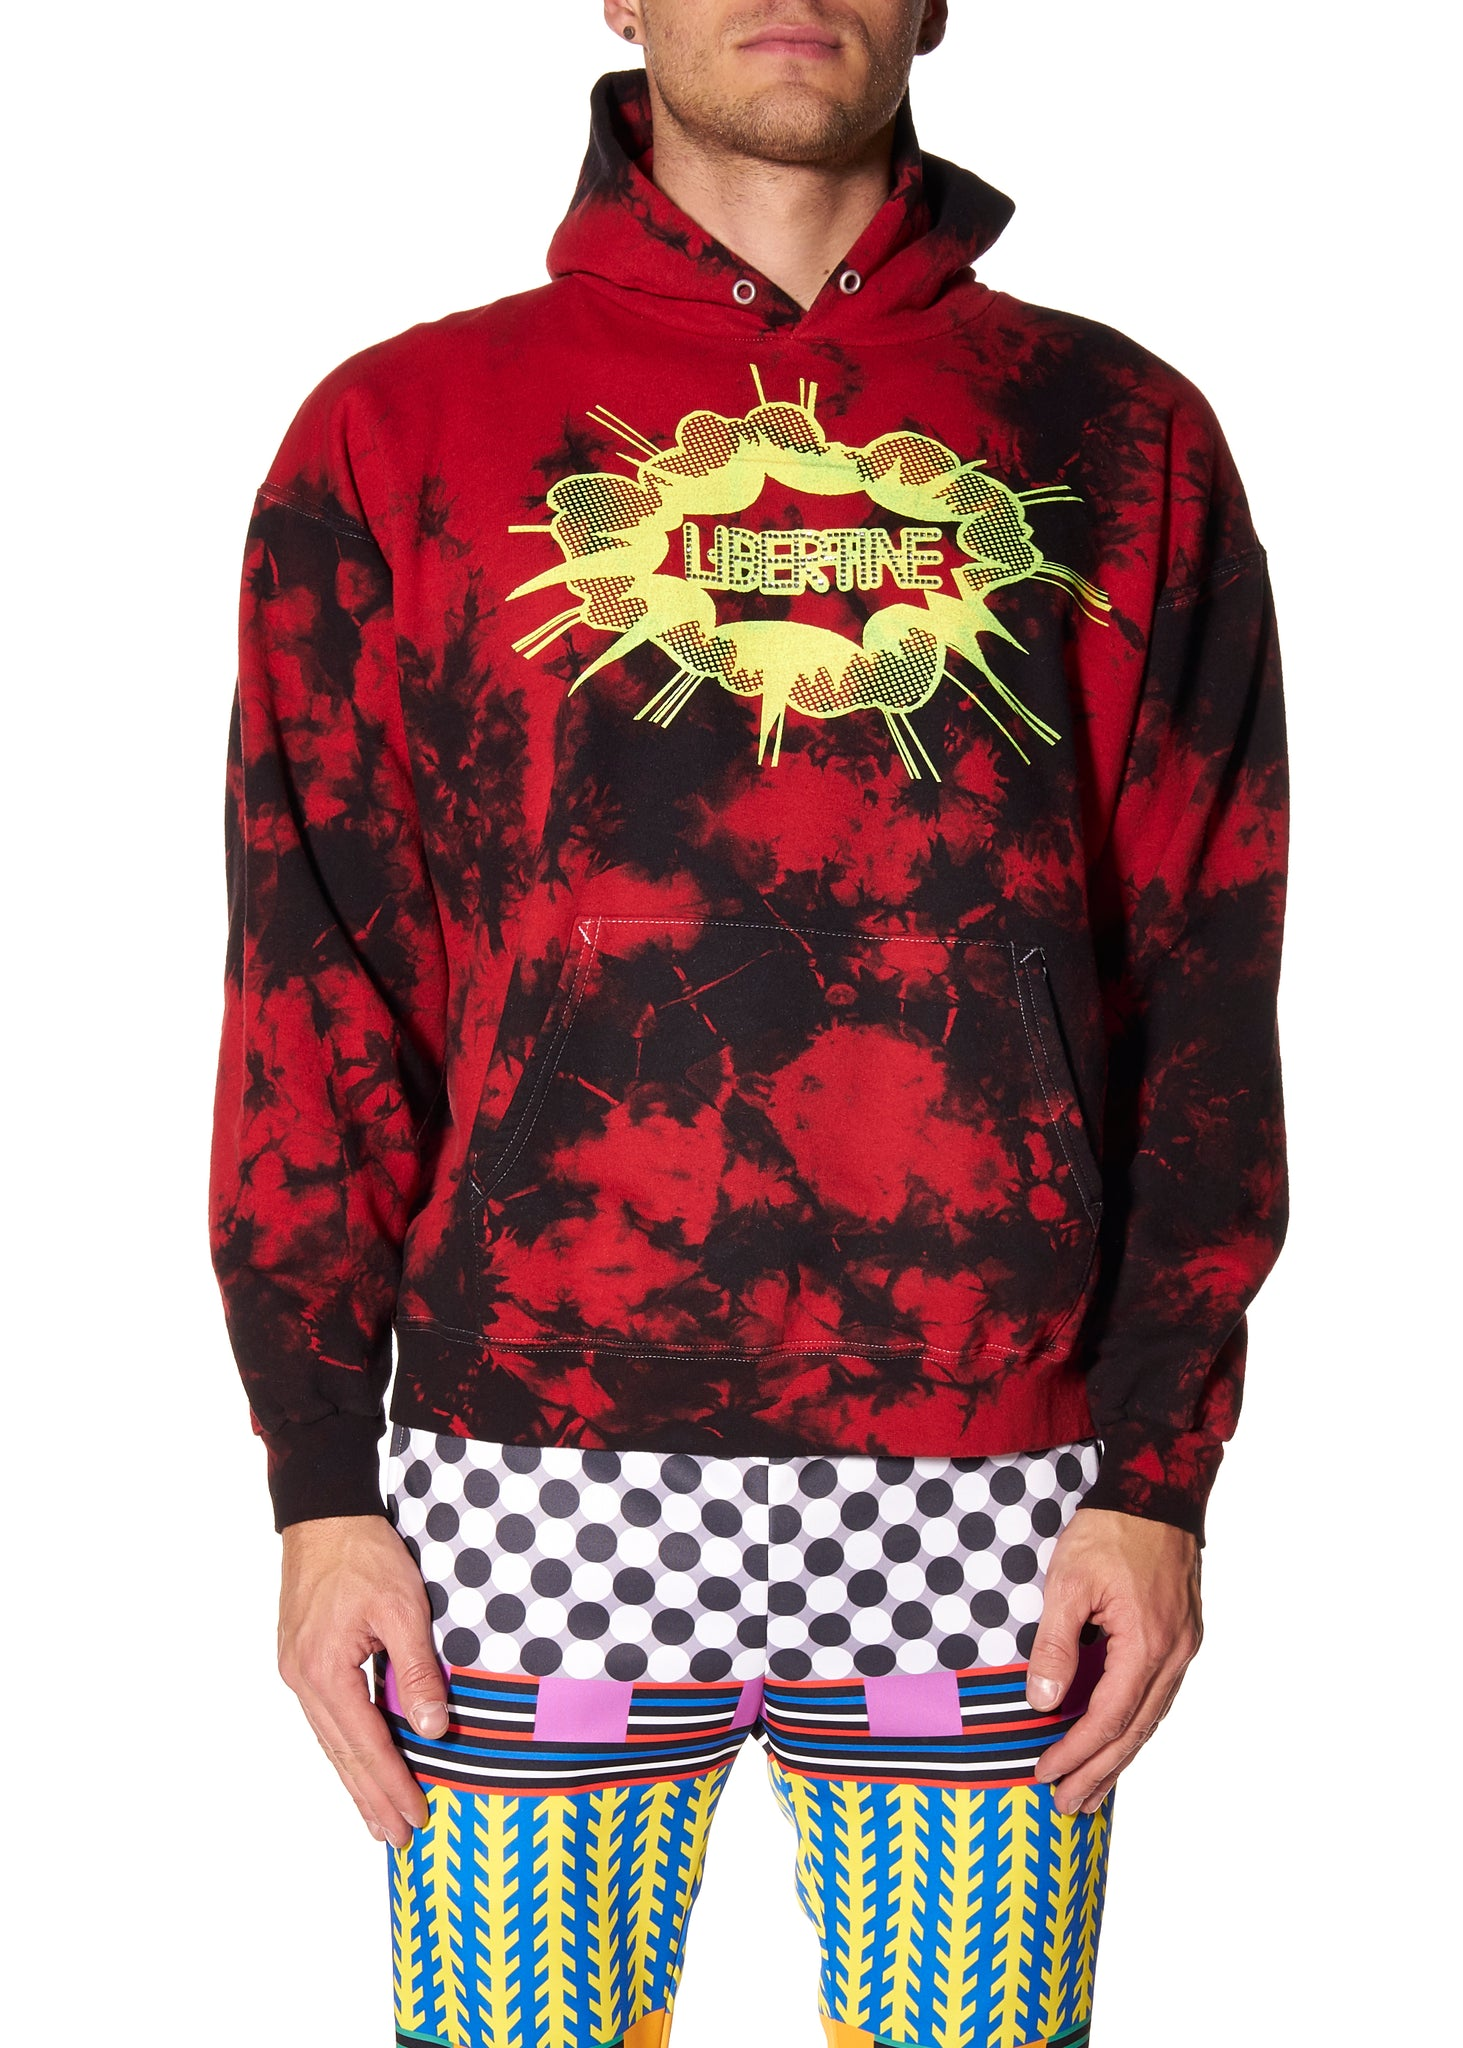 LIBERTINE SCREEN PRINT TIE DYE HOODED SWEATSHIRT - Men's Tops - Libertine